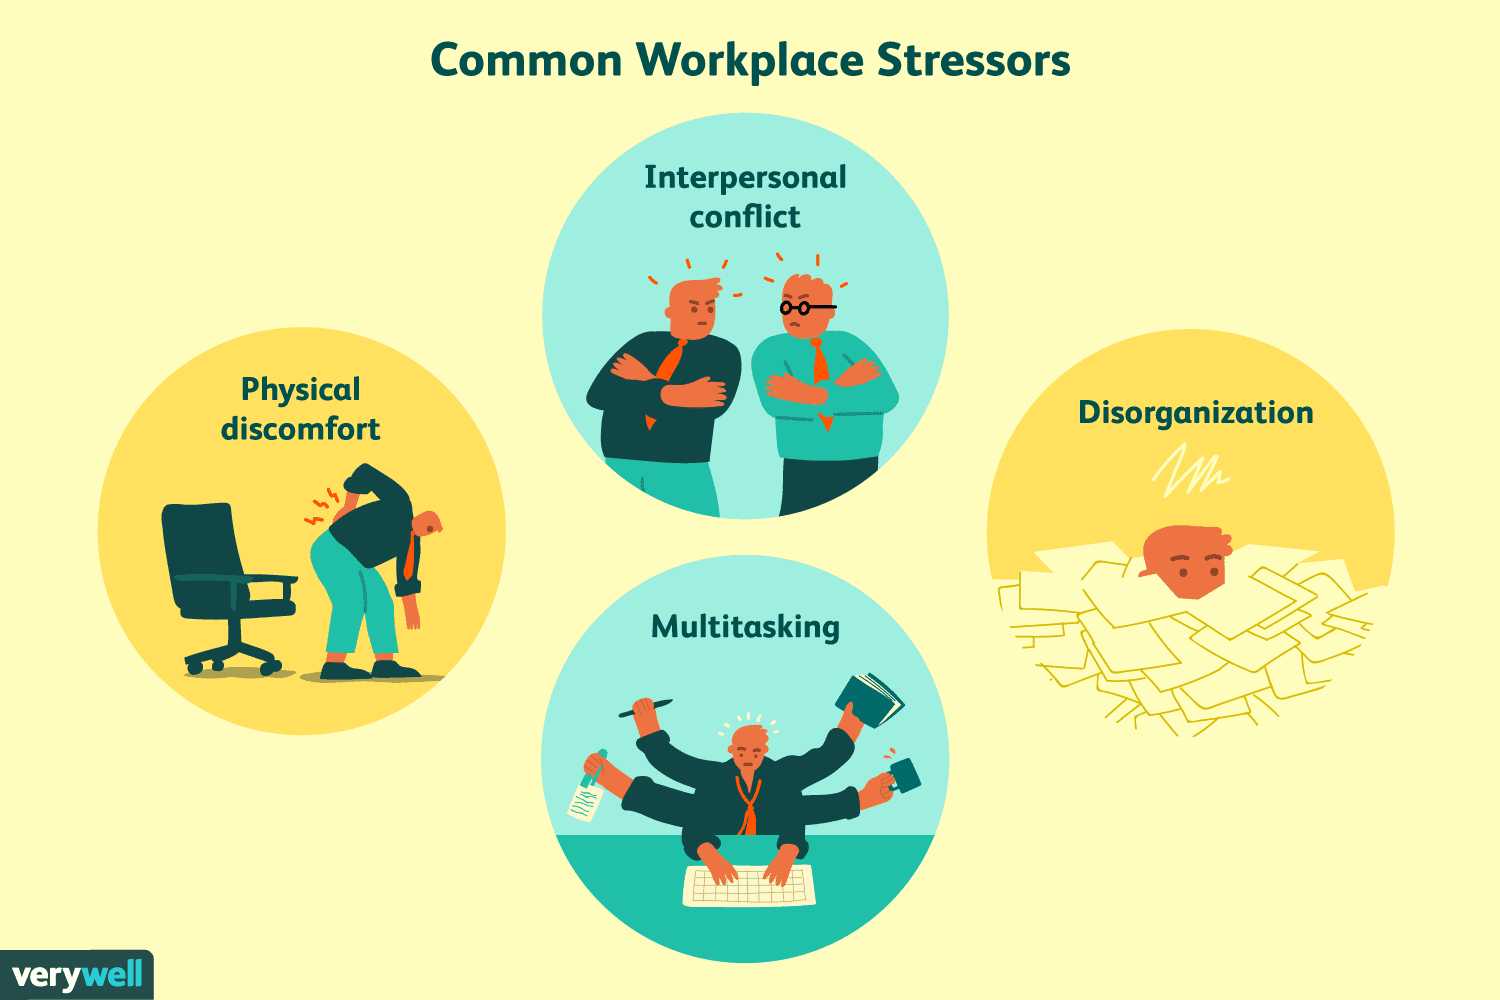 how-to-deal-with-stress-at-work-3145273_FINAL-5be9954746e0fb0026a730c3.png